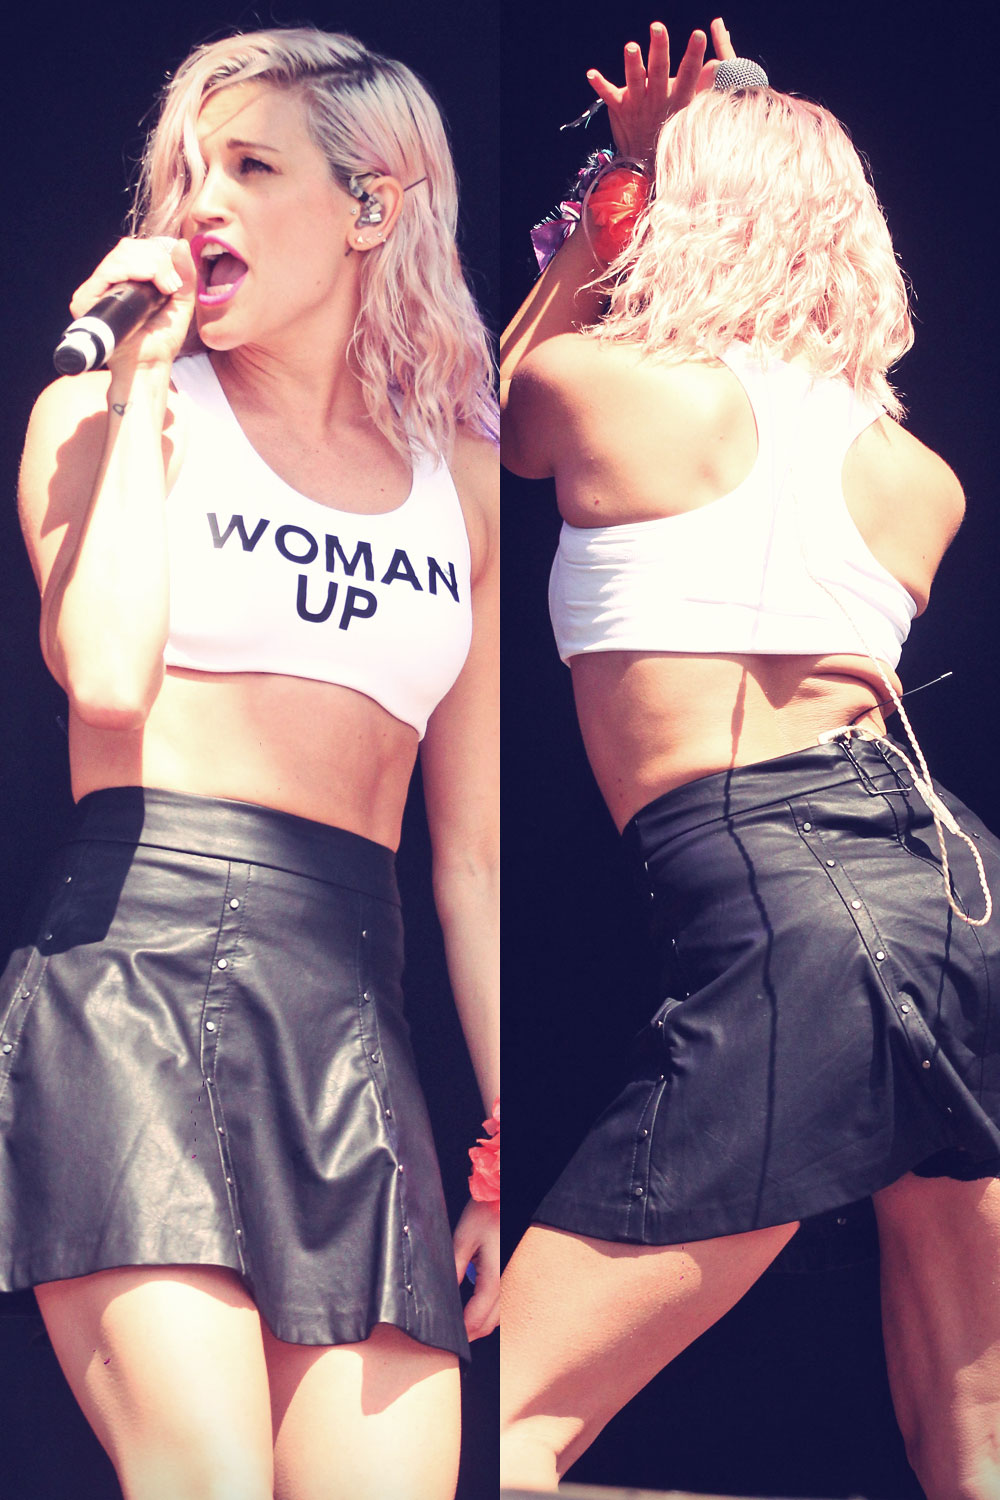 Ashley Roberts performs at the Guilfest festival